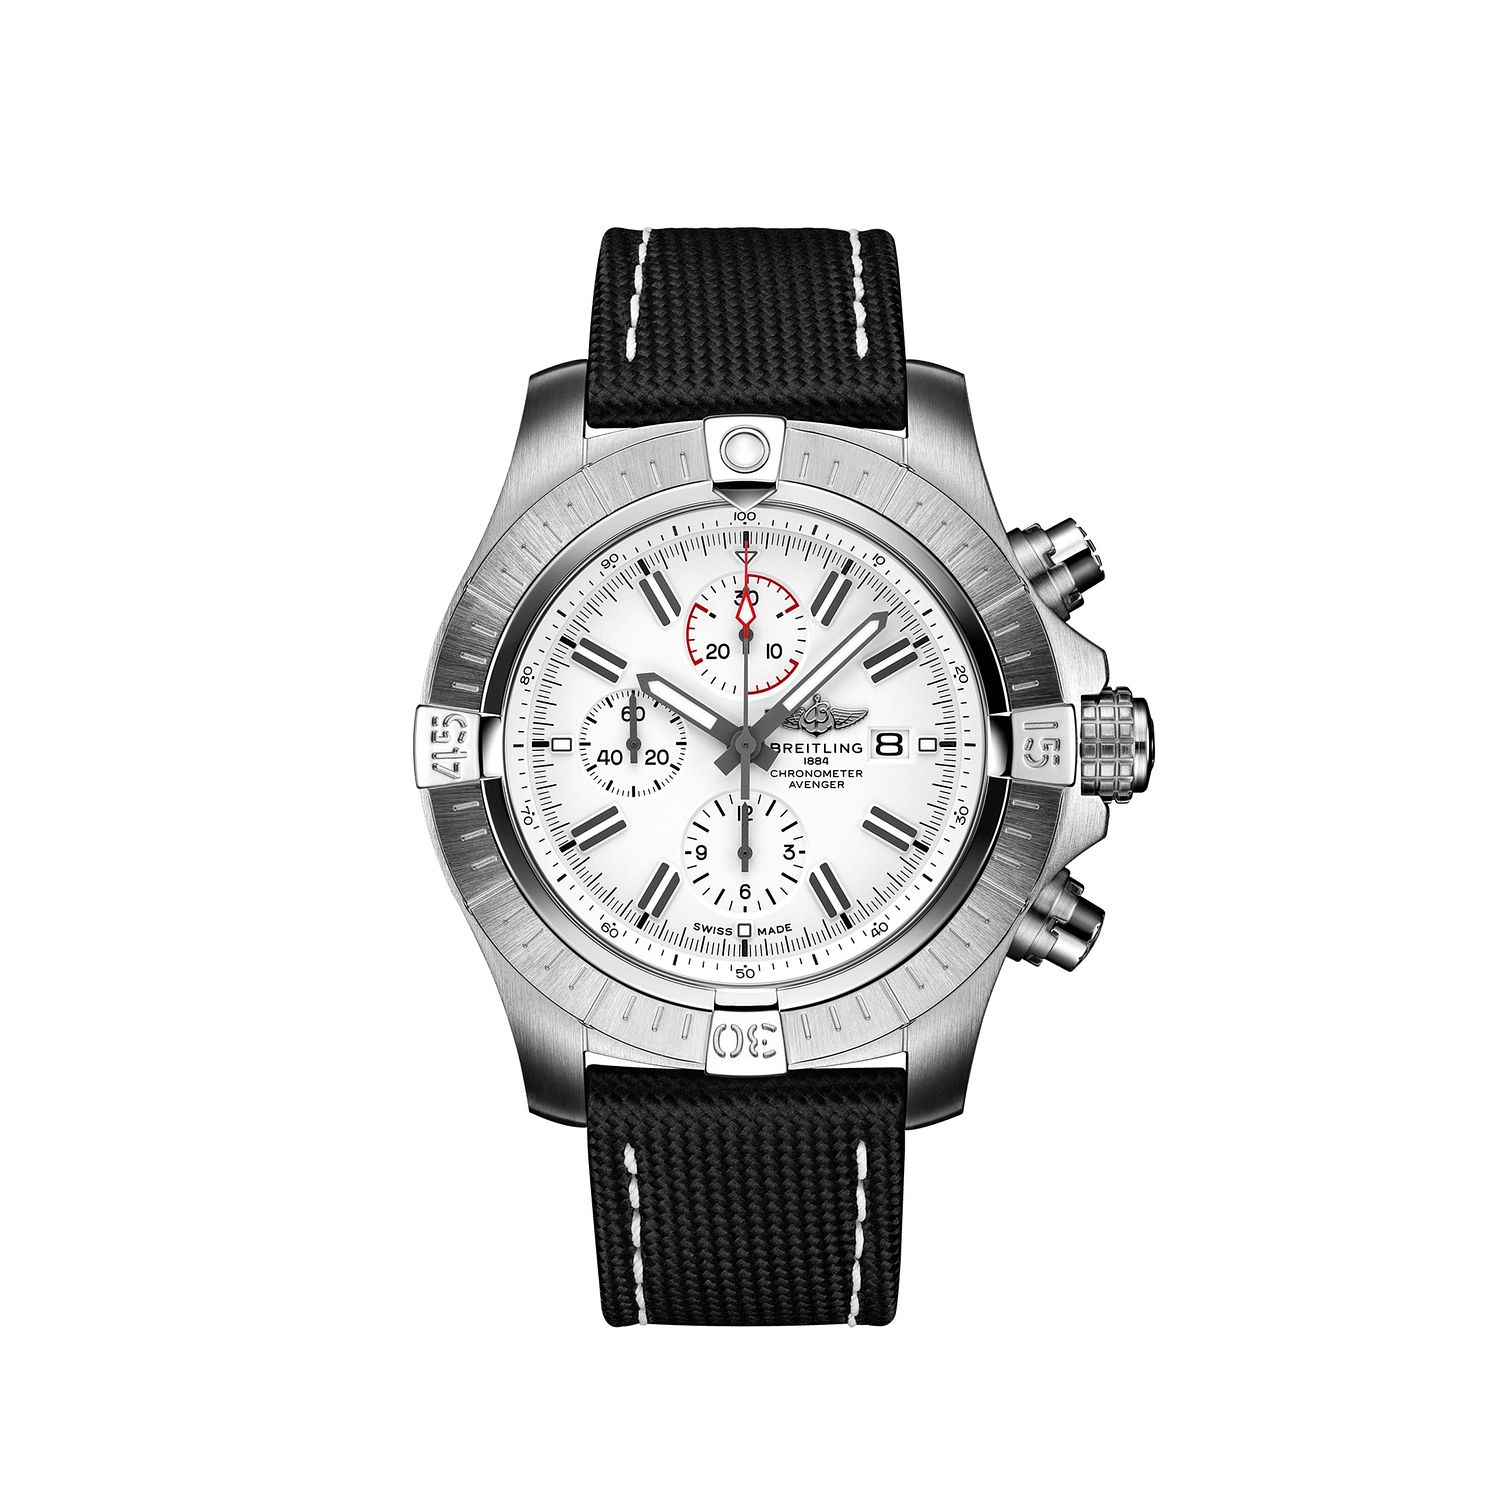 Breitling Super Avenger Chrono 48 Black Leather Strap Watch - Product number 1167804